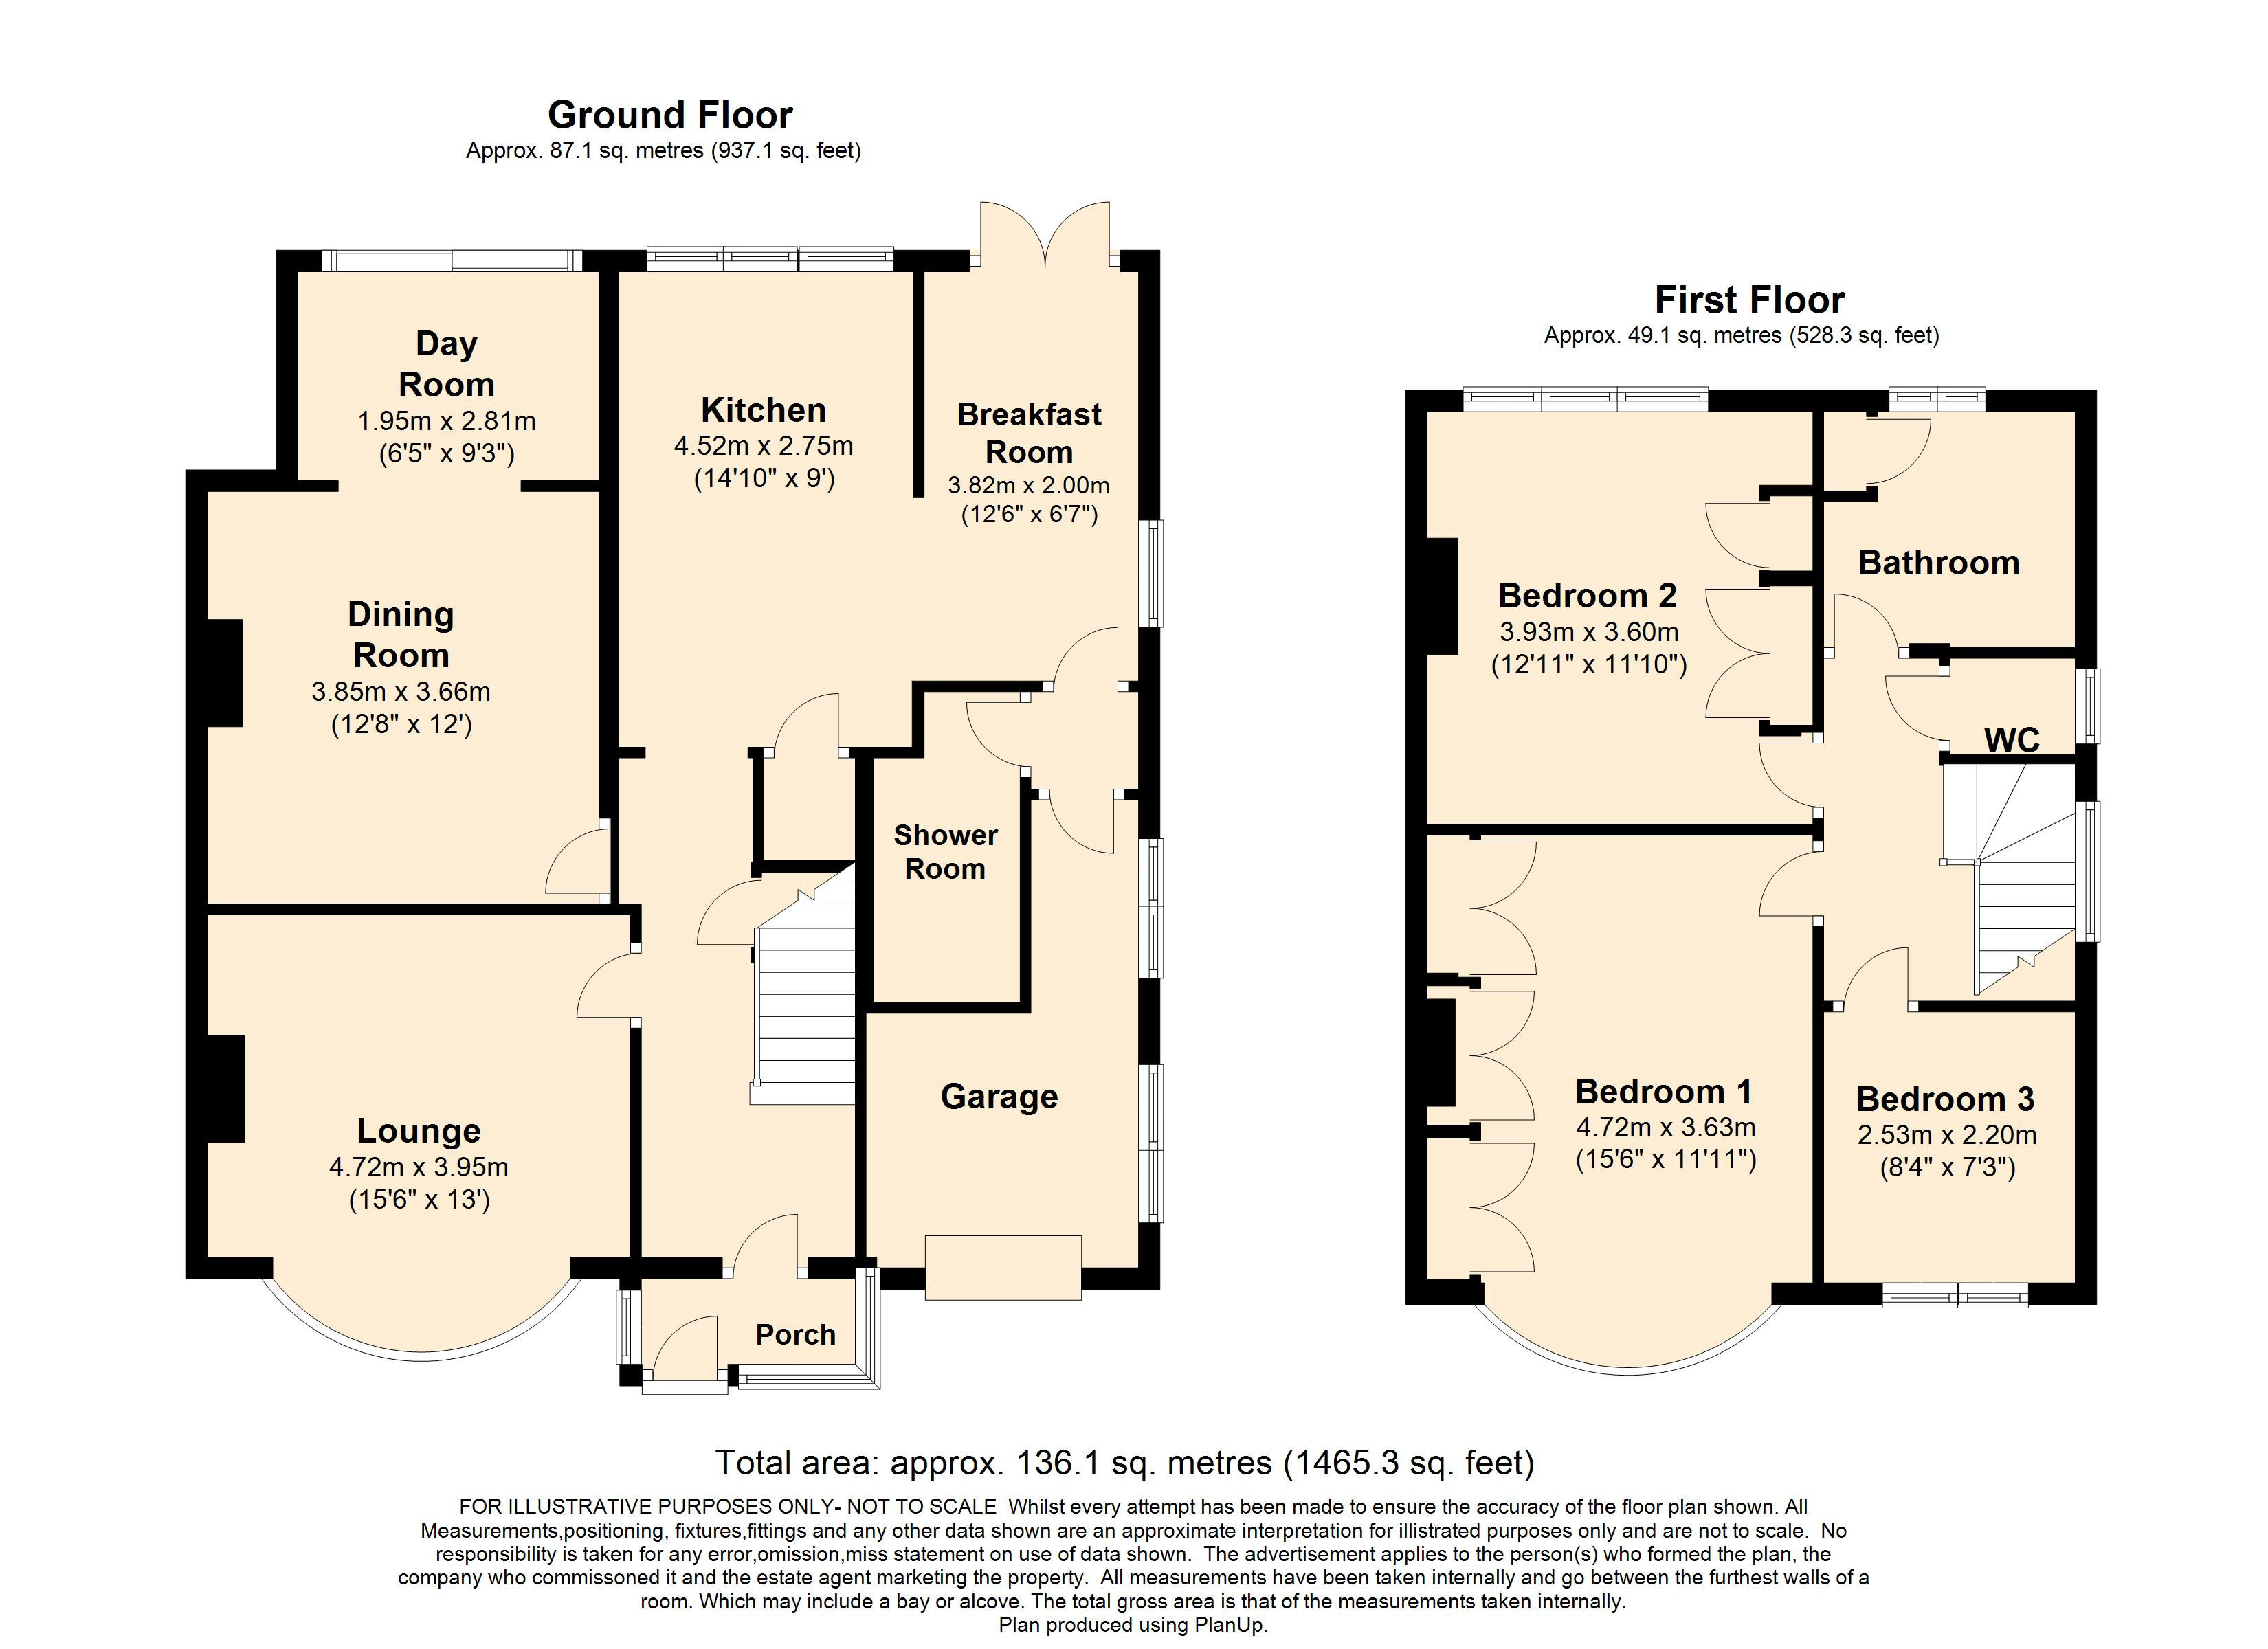 54_Priory_Ave,_Cheam floor plan